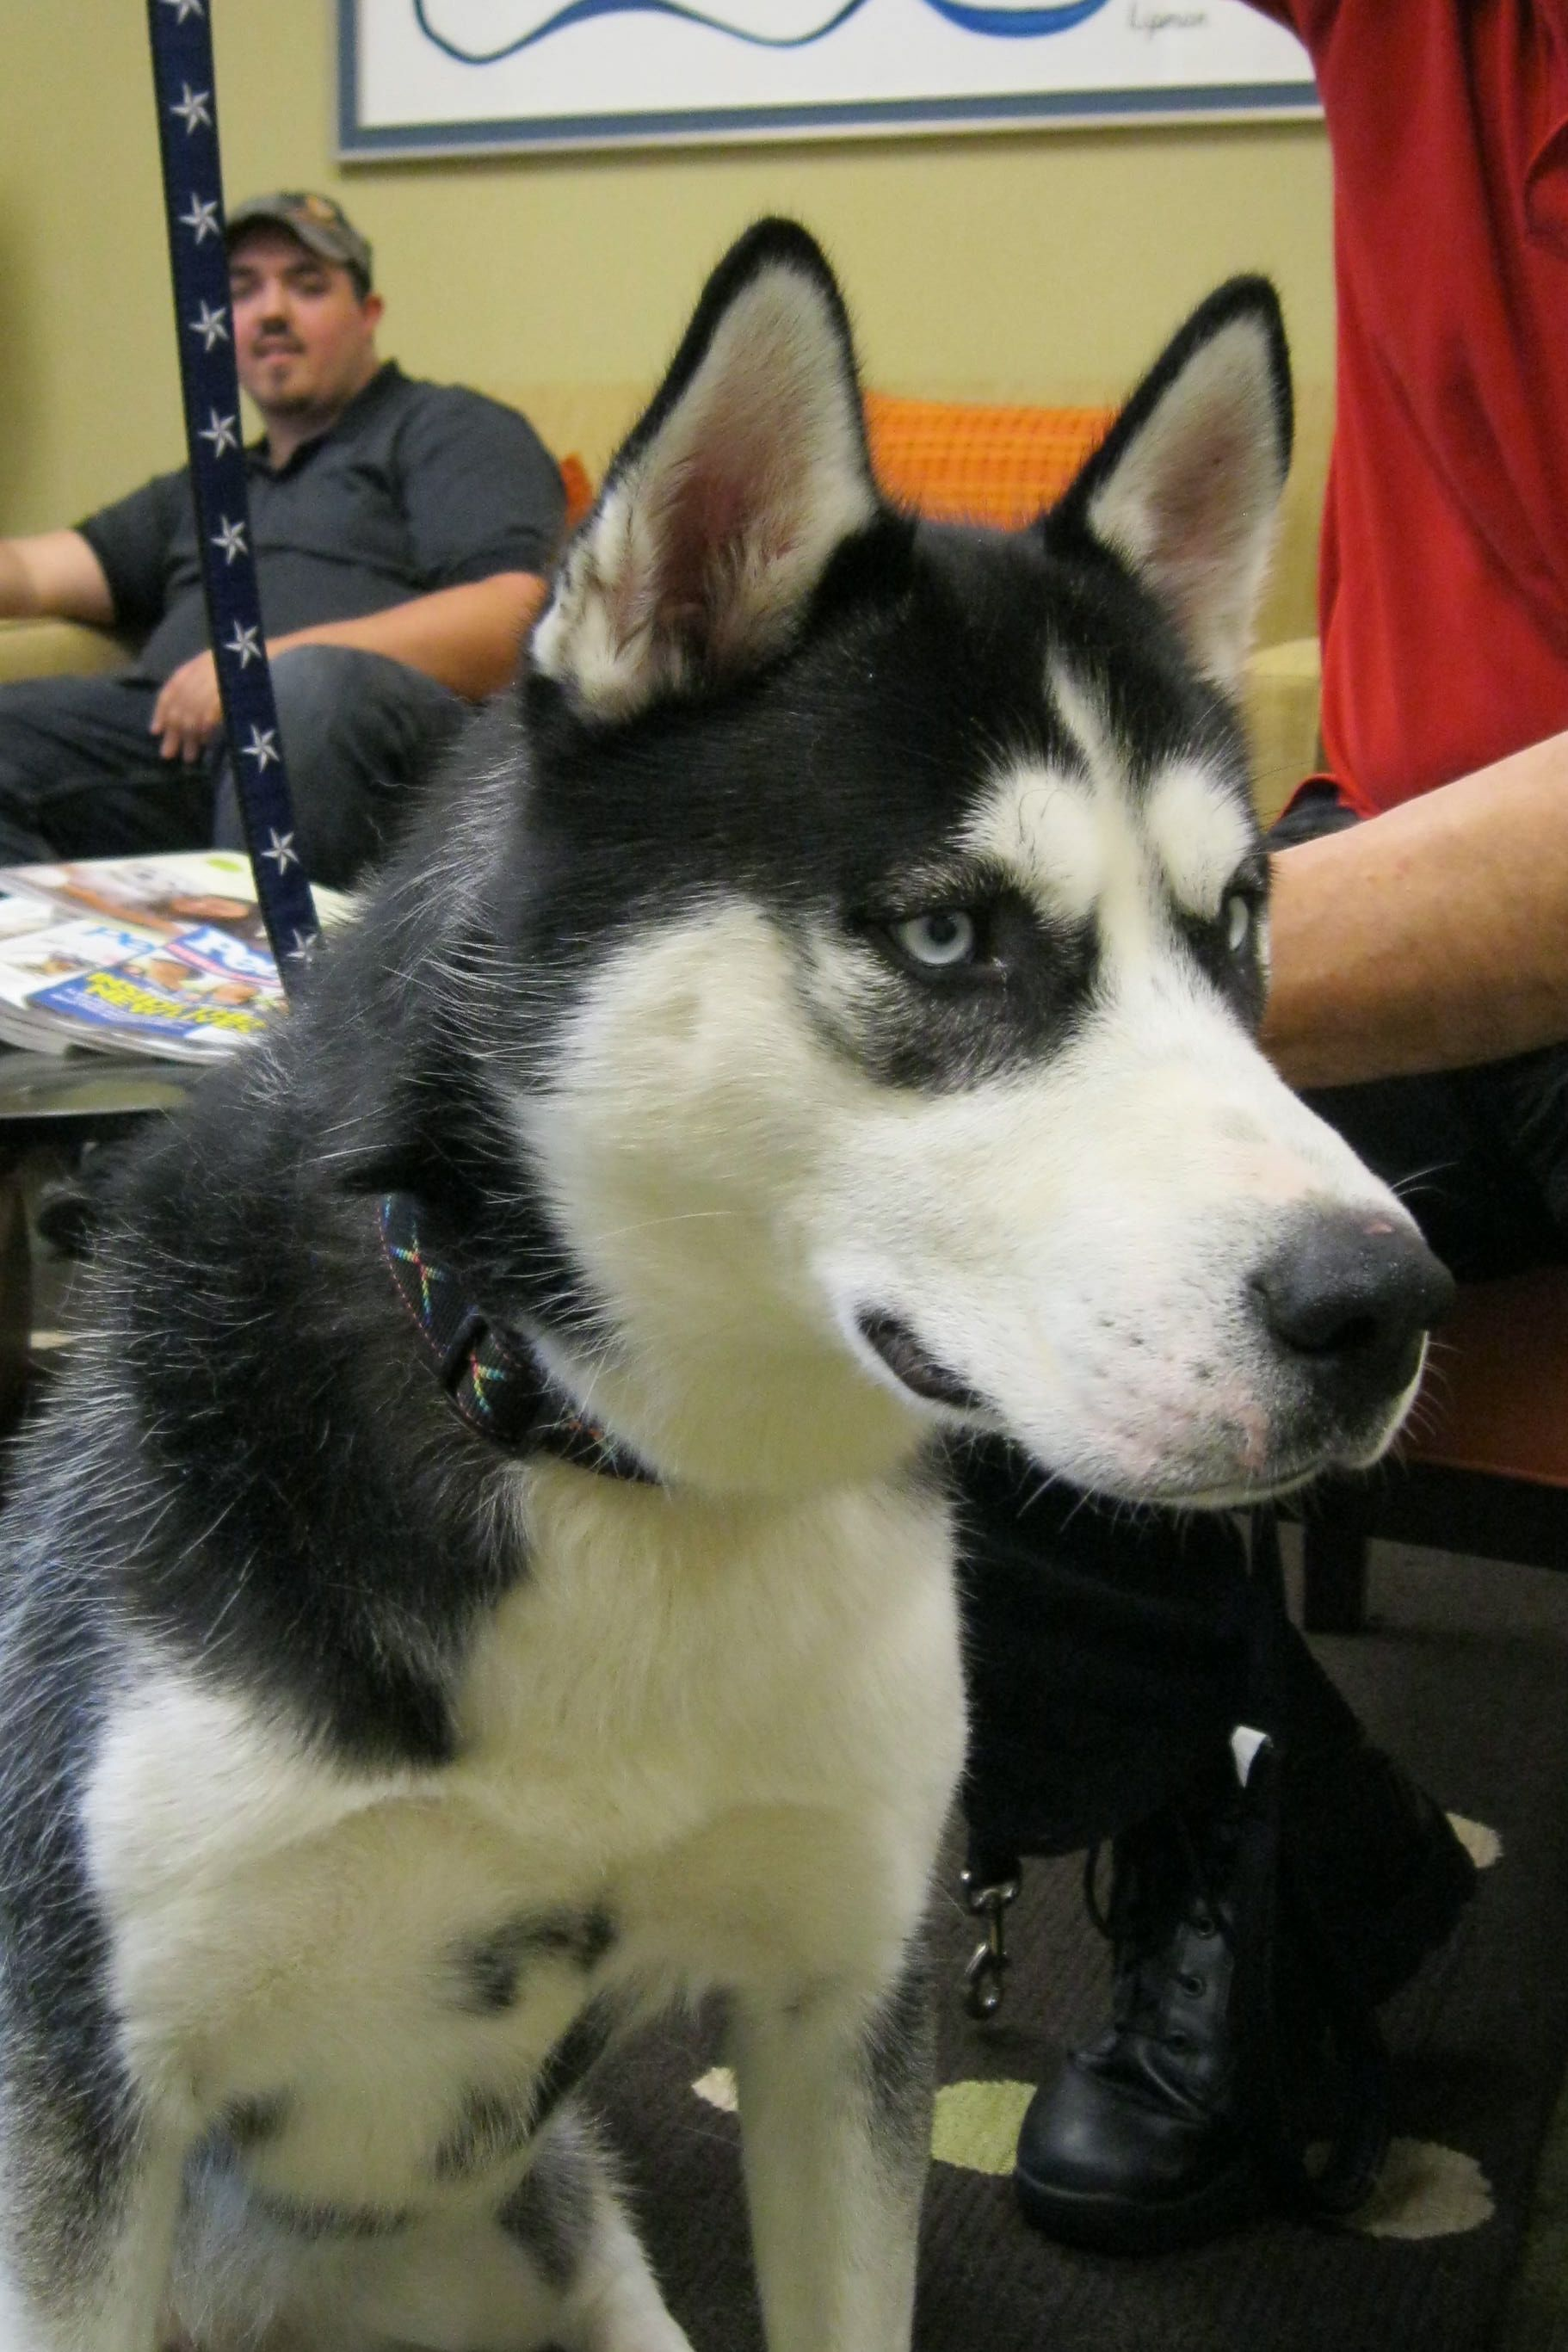 Dallas is a beautiful Malamute 10 month old, with stunning